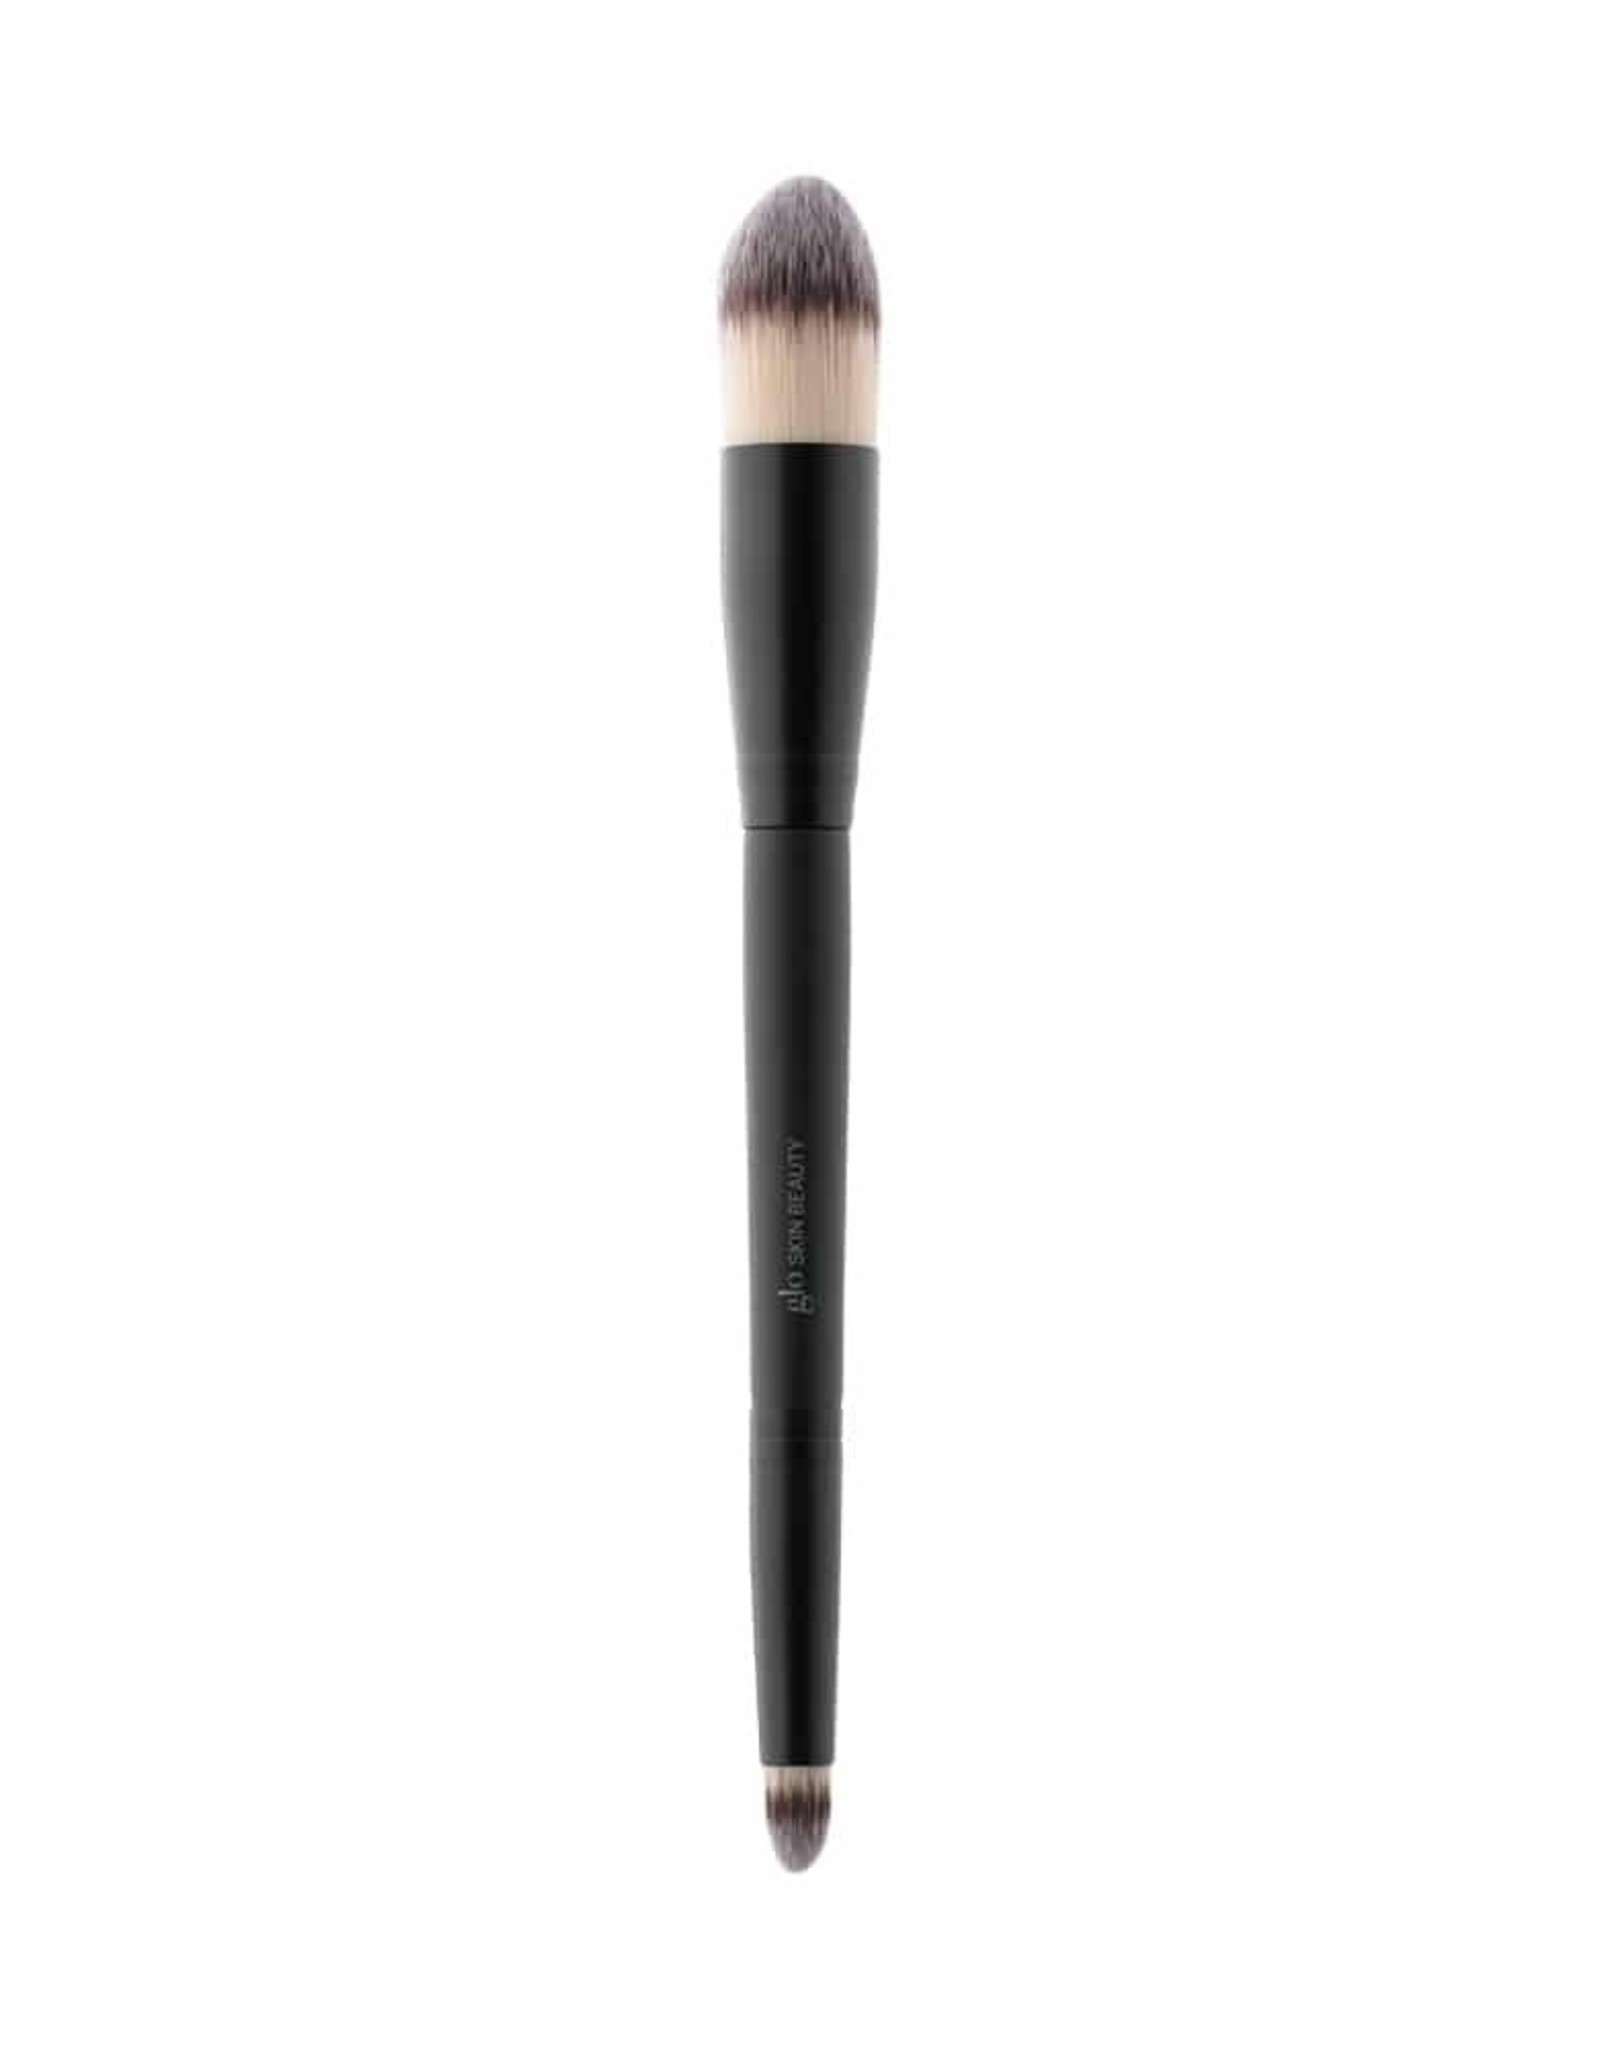 Glo Skin Beauty 109 Dual Foundation/Camouflage Brush